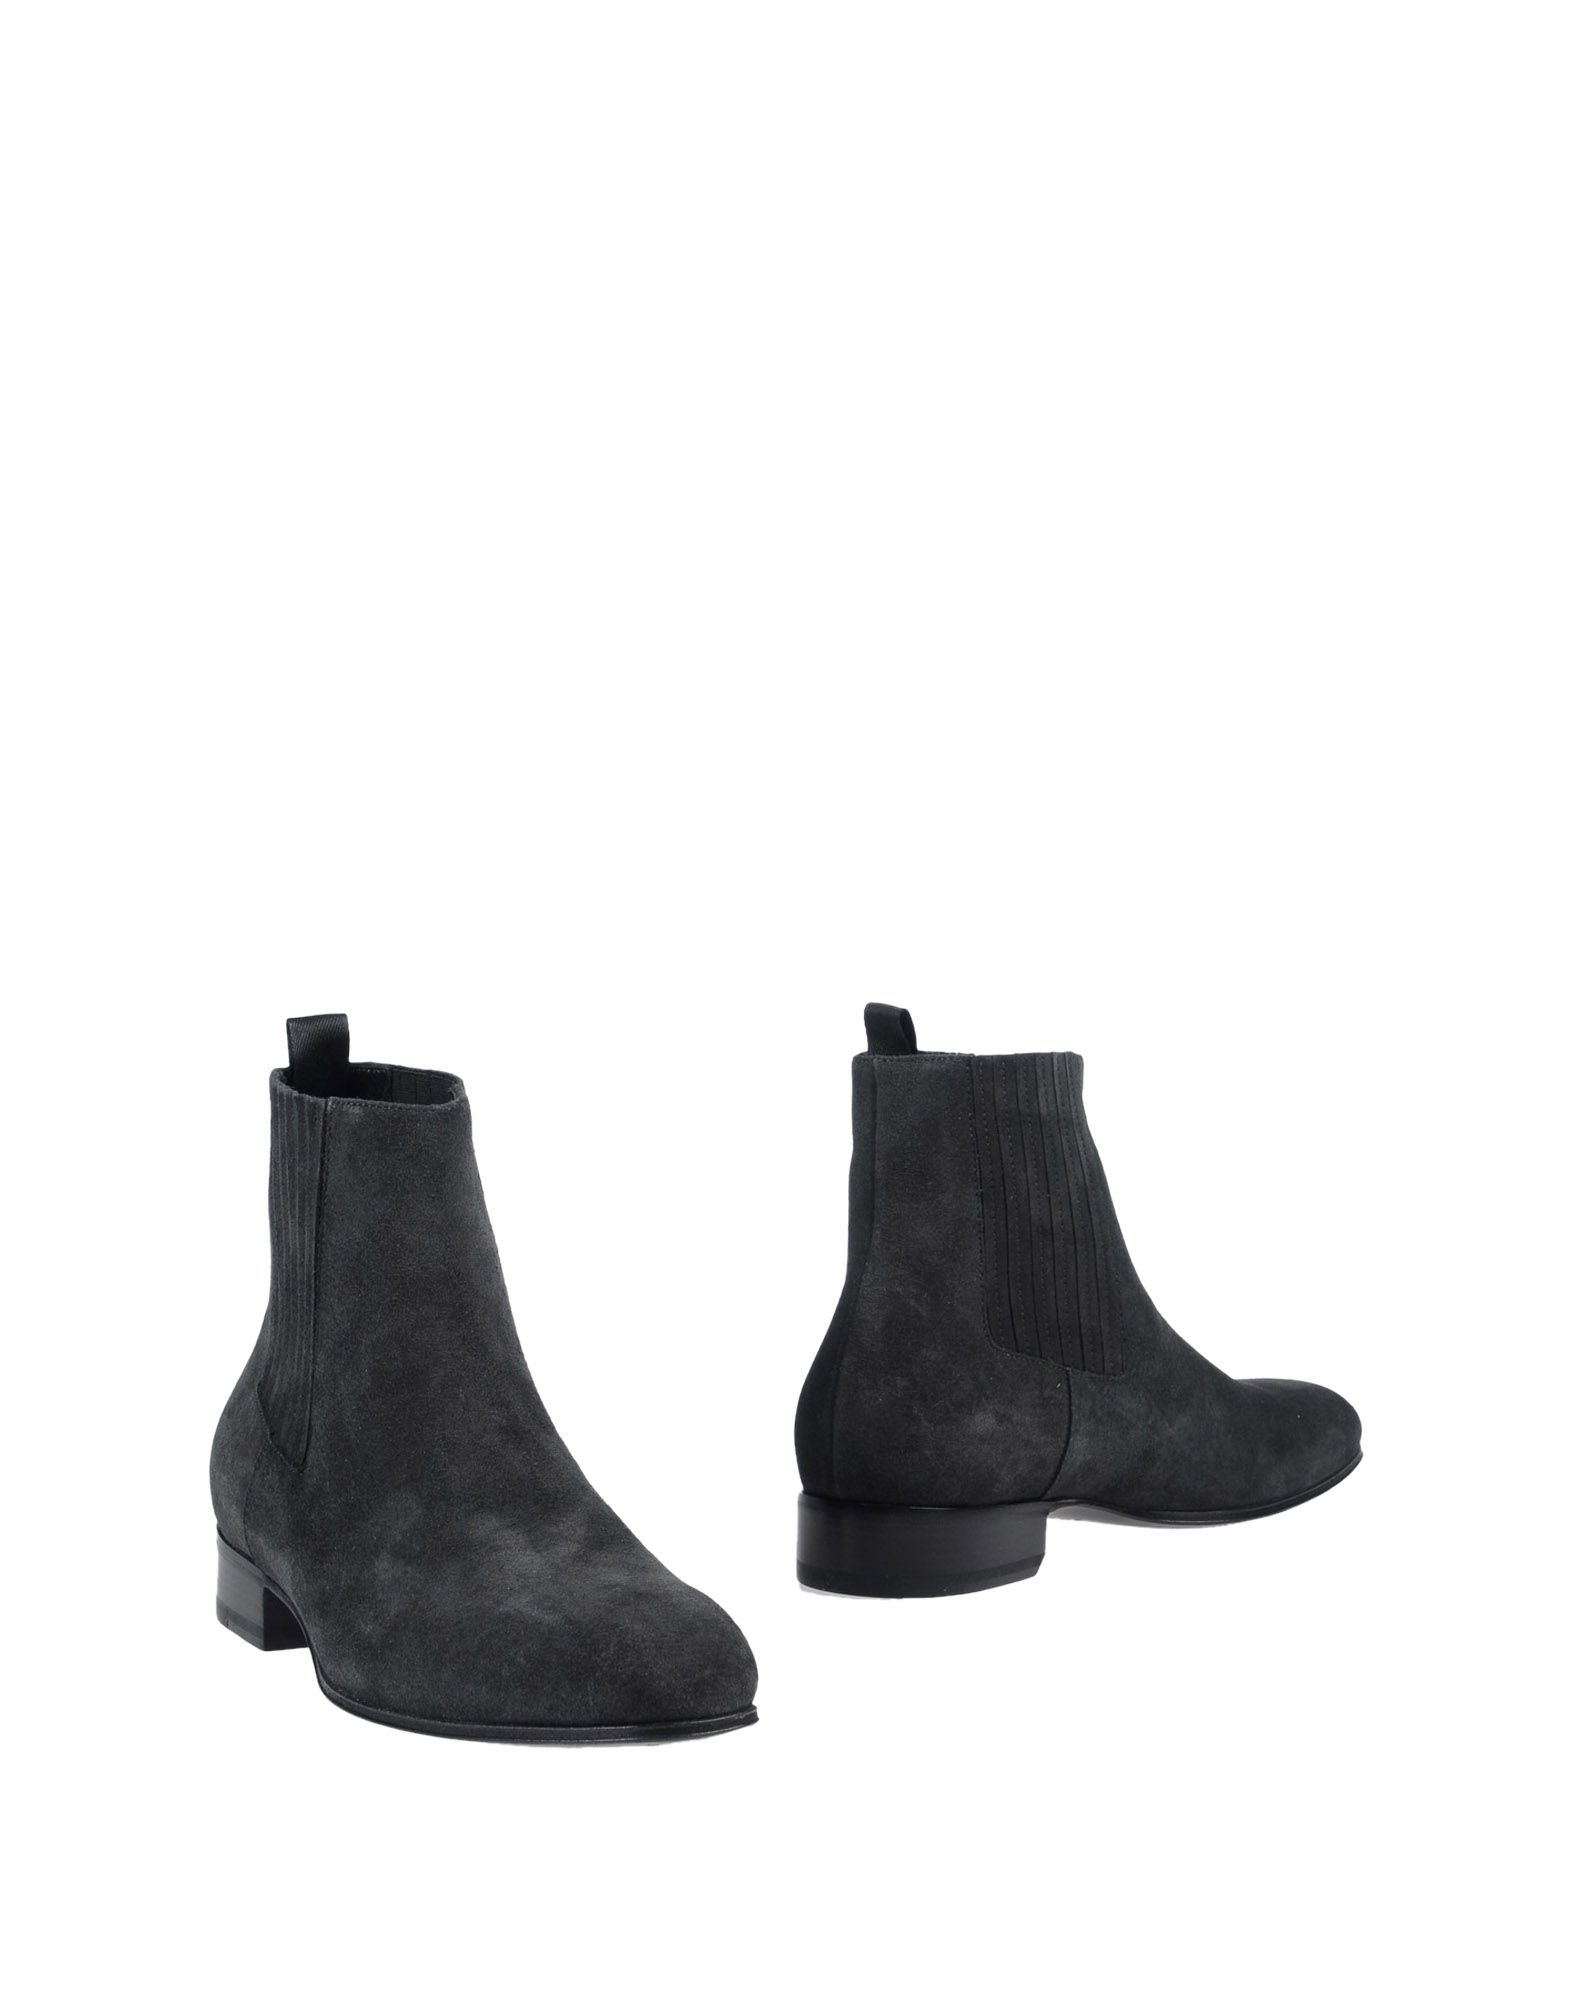 Balenciaga Boots - Men Balenciaga United Boots online on  United Balenciaga Kingdom - 11439326AH 57c37f